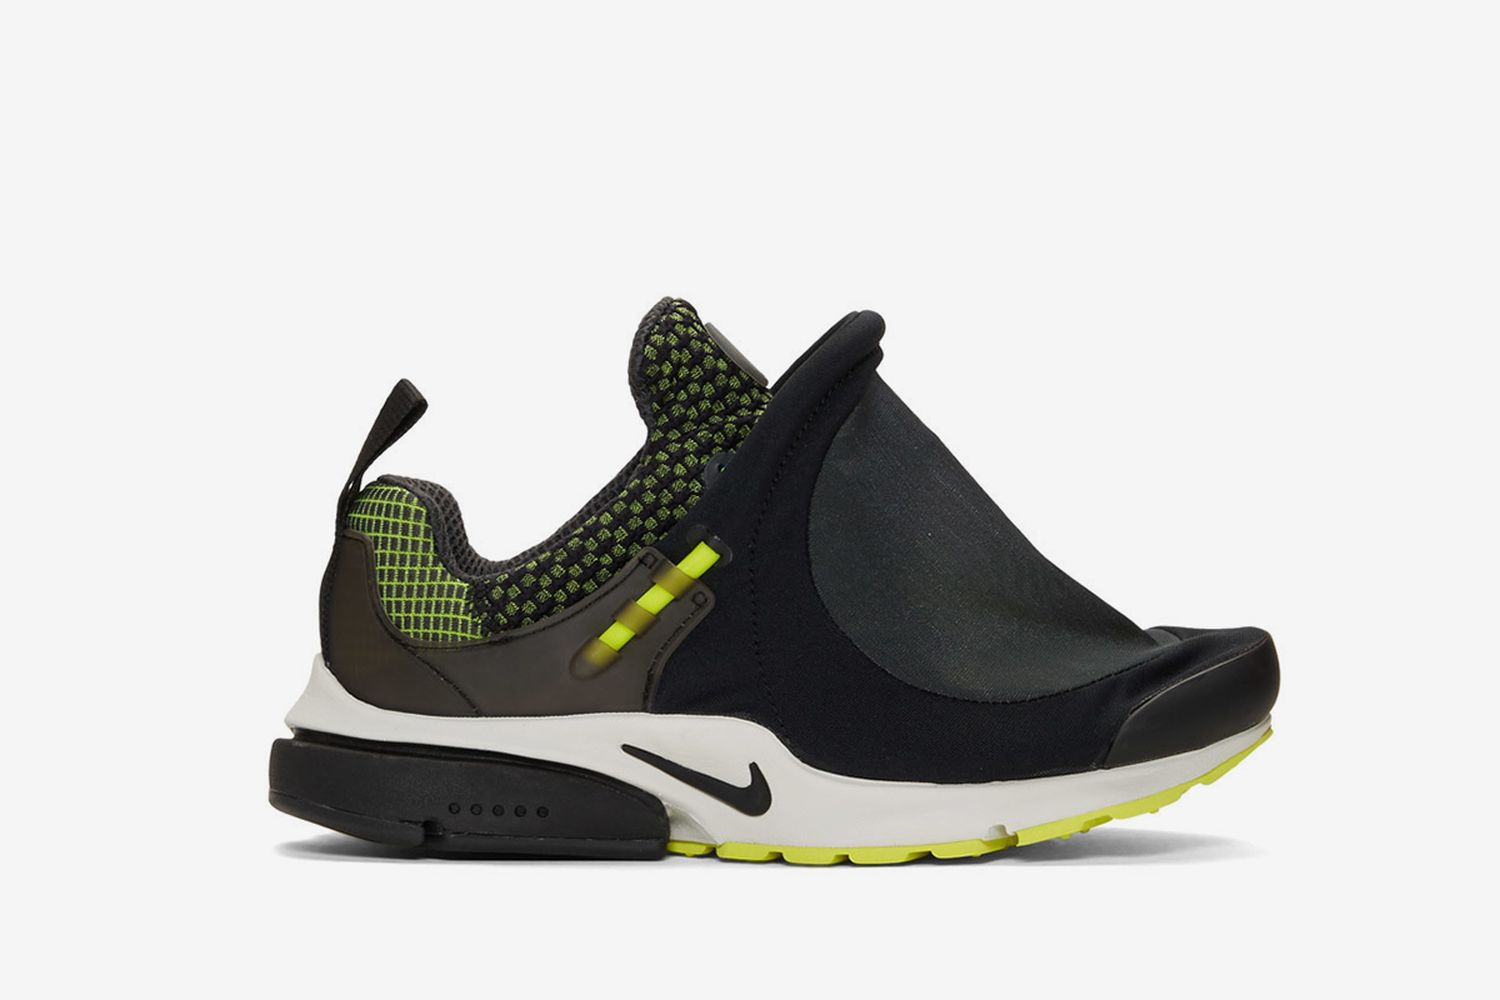 Air Presto Foot Tent Sneakers